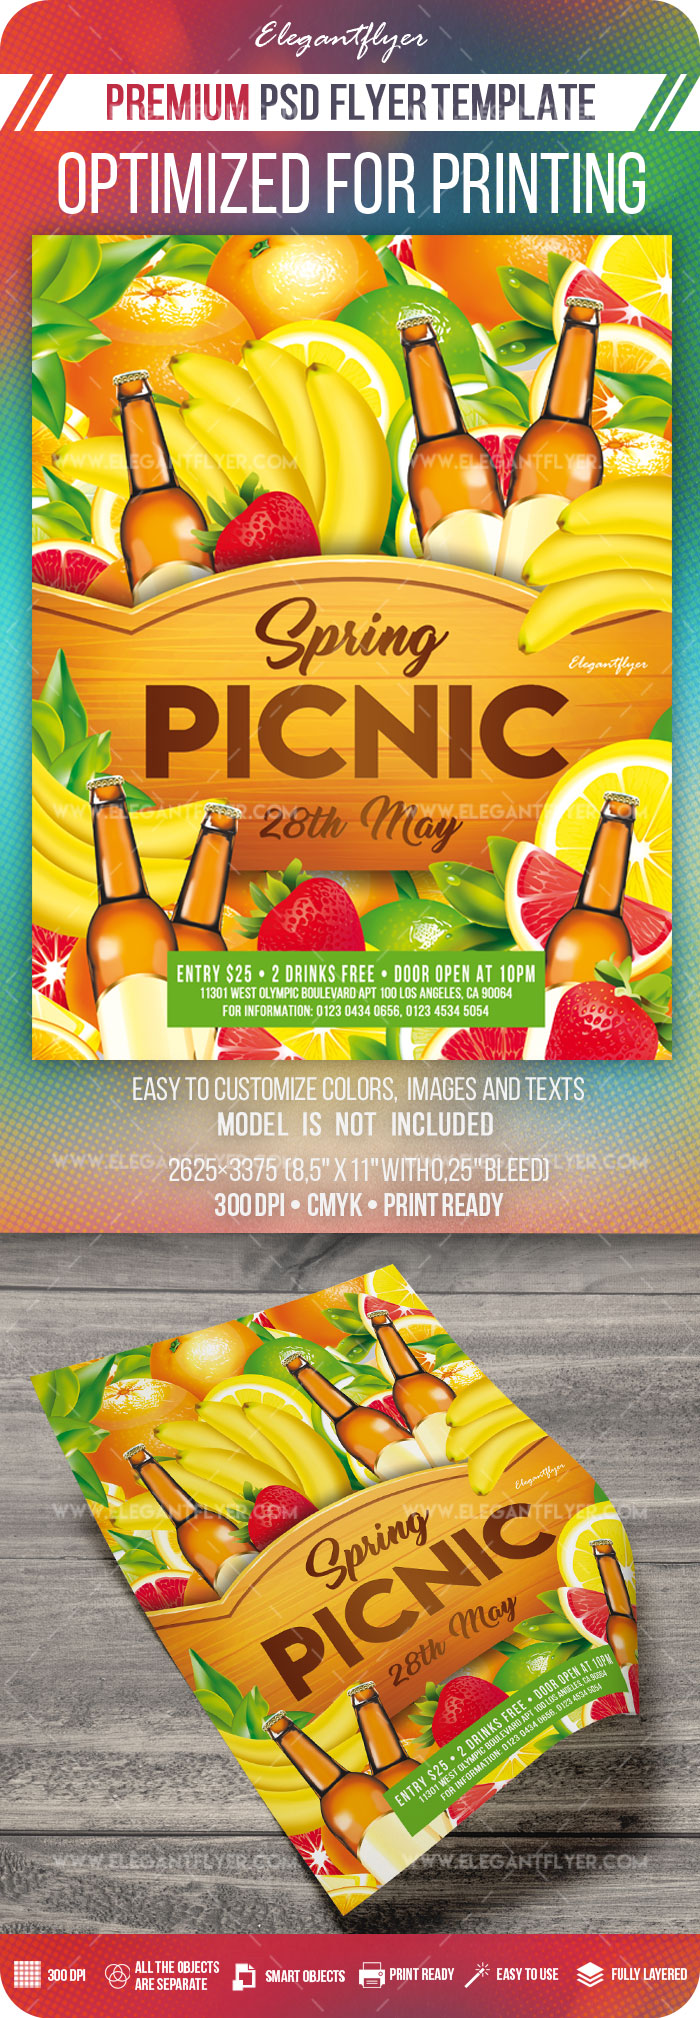 Spring Picnic – Flyer Template in PSD